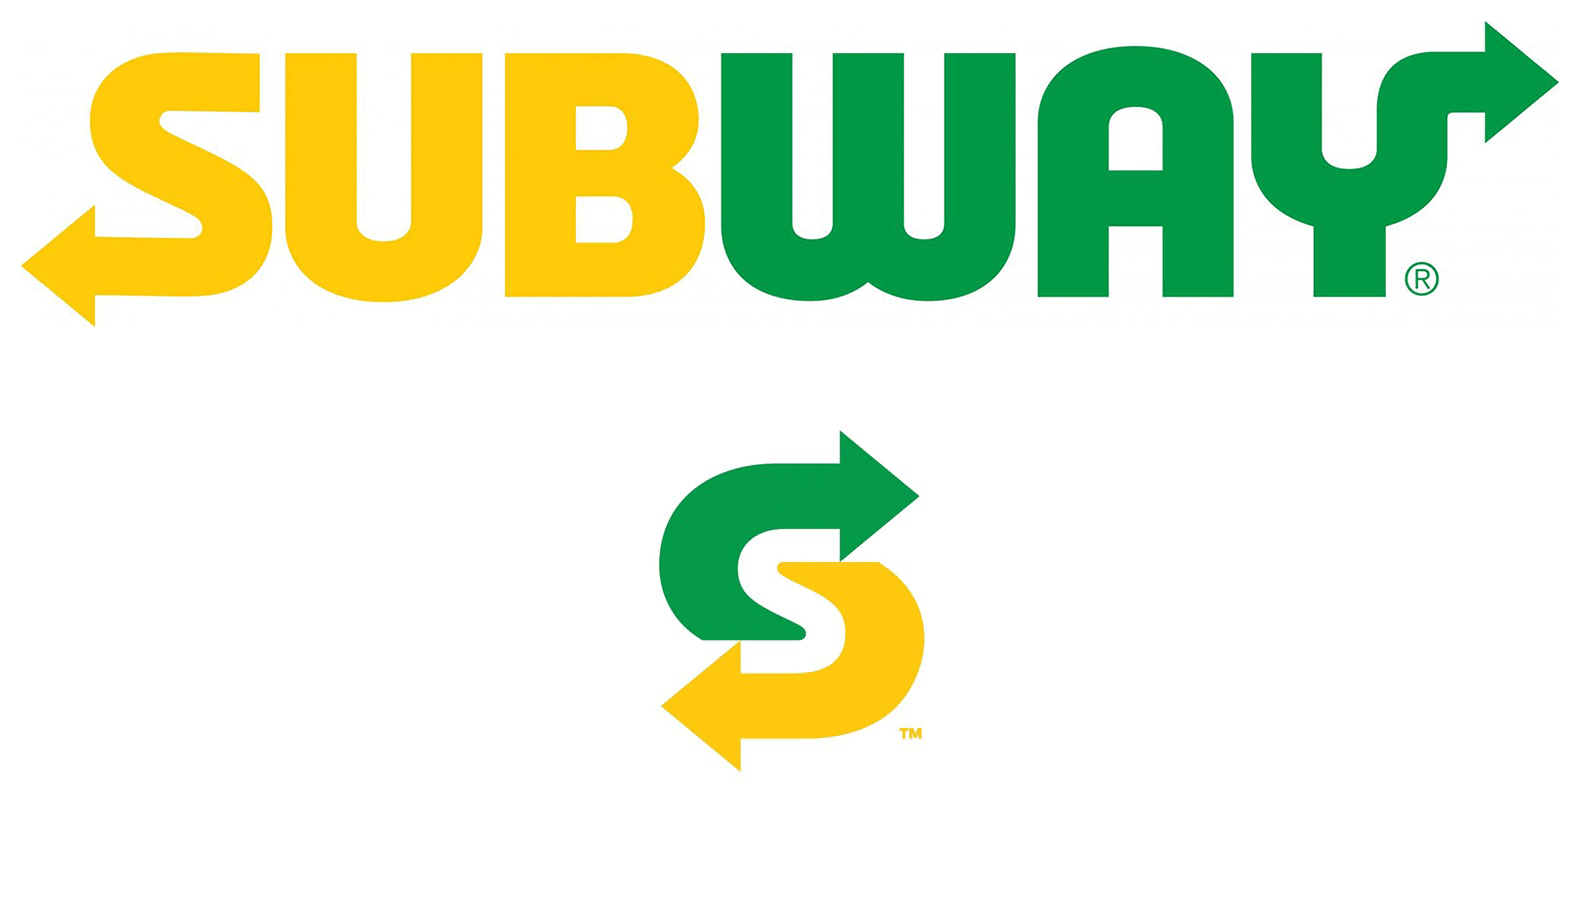 Subway-logo-2016-w-icon